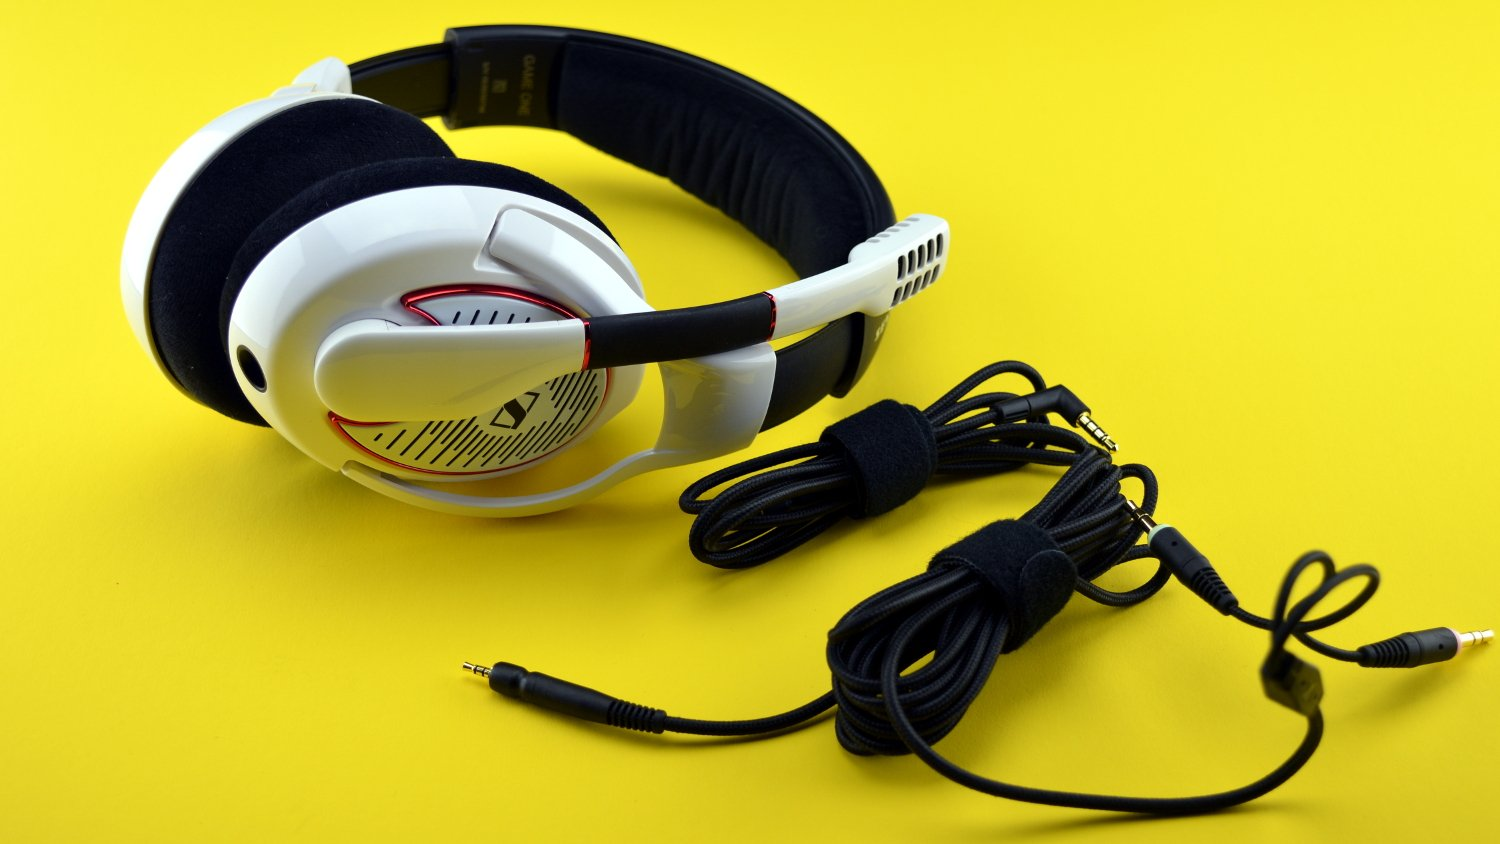 30a55b68676 Sennheiser Game One Gaming Headset Review - Headphone Review